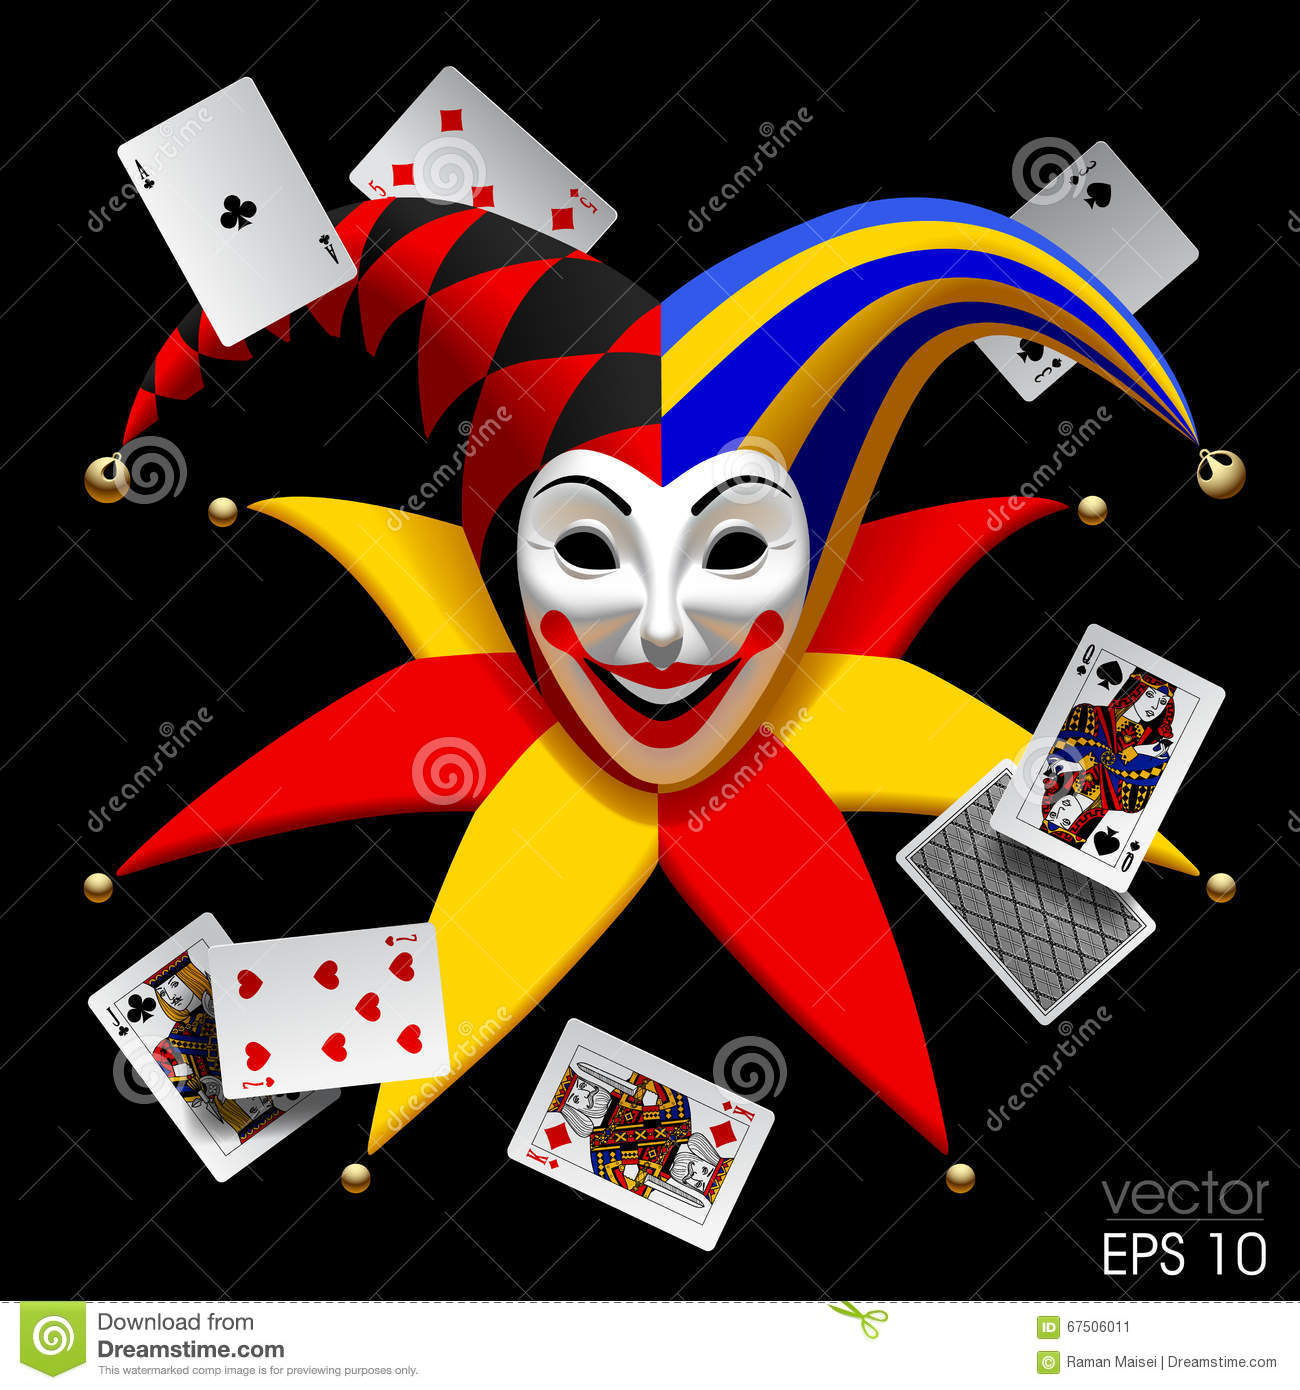 Dream clown poker